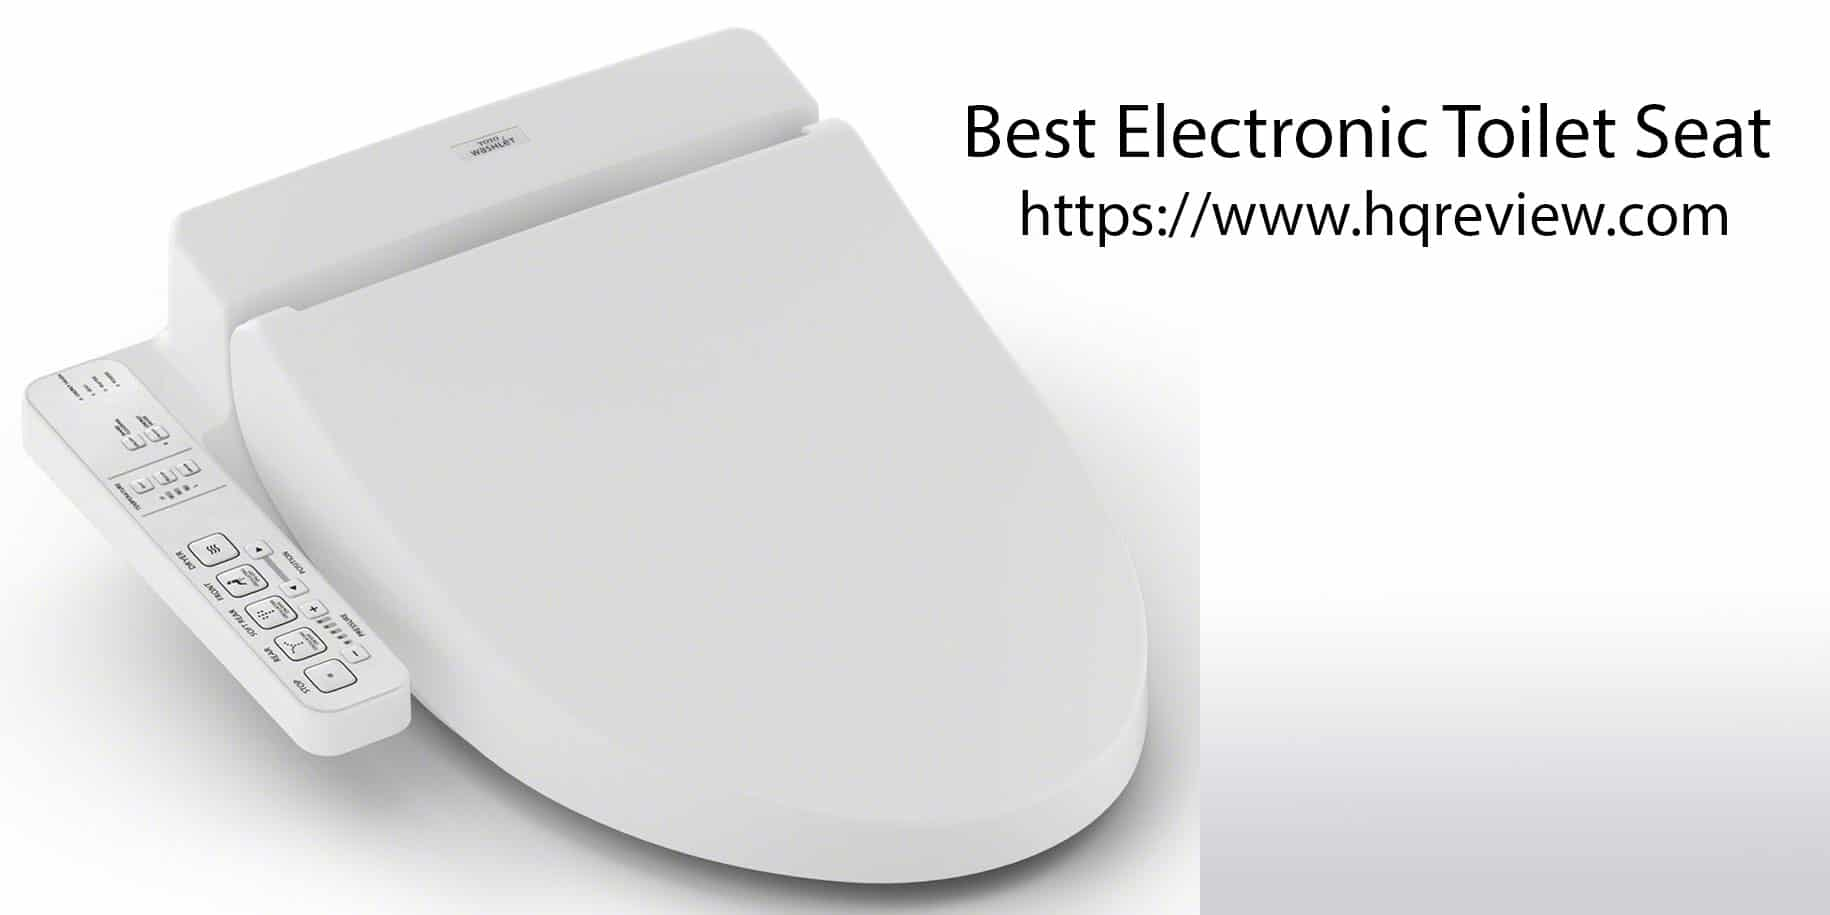 Pleasing Top 10 Best Electronic Toilet Seat In 2019 Reviews Hqreview Squirreltailoven Fun Painted Chair Ideas Images Squirreltailovenorg